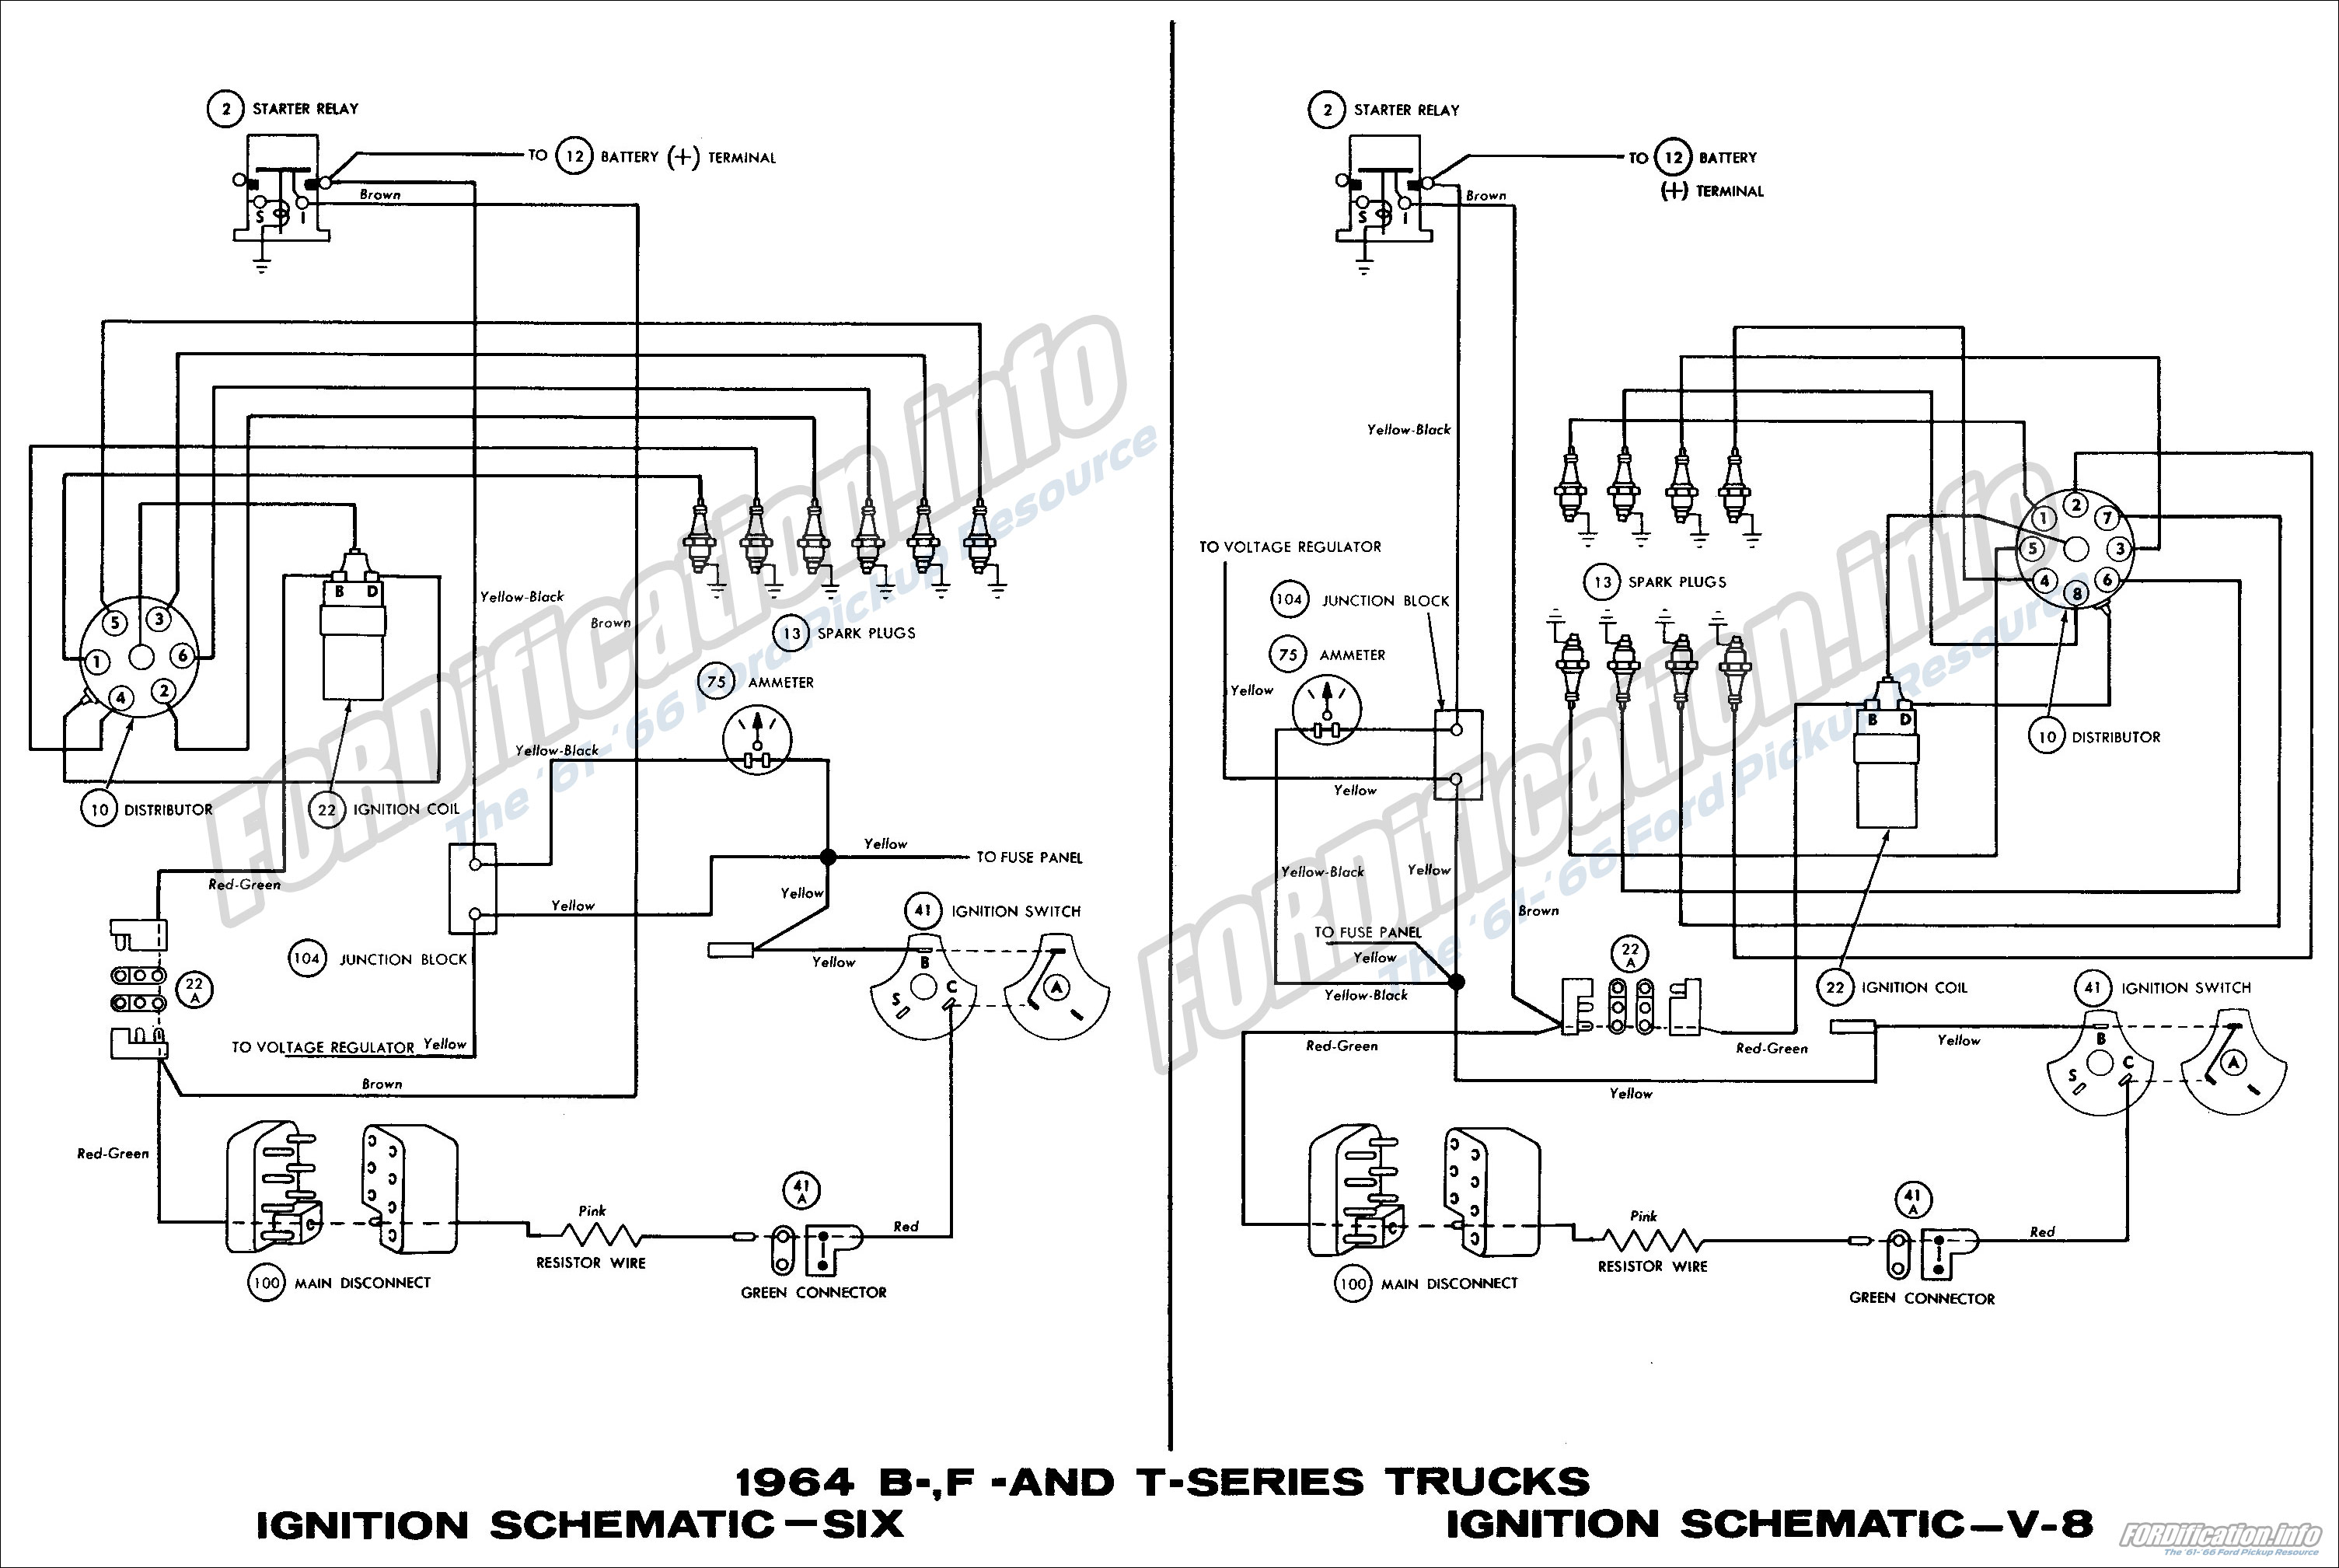 1964 ford truck wiring diagrams fordification info the 61 66 rh fordification info 1965 ford truck wiring diagram 76 Ford Wiring Diagram